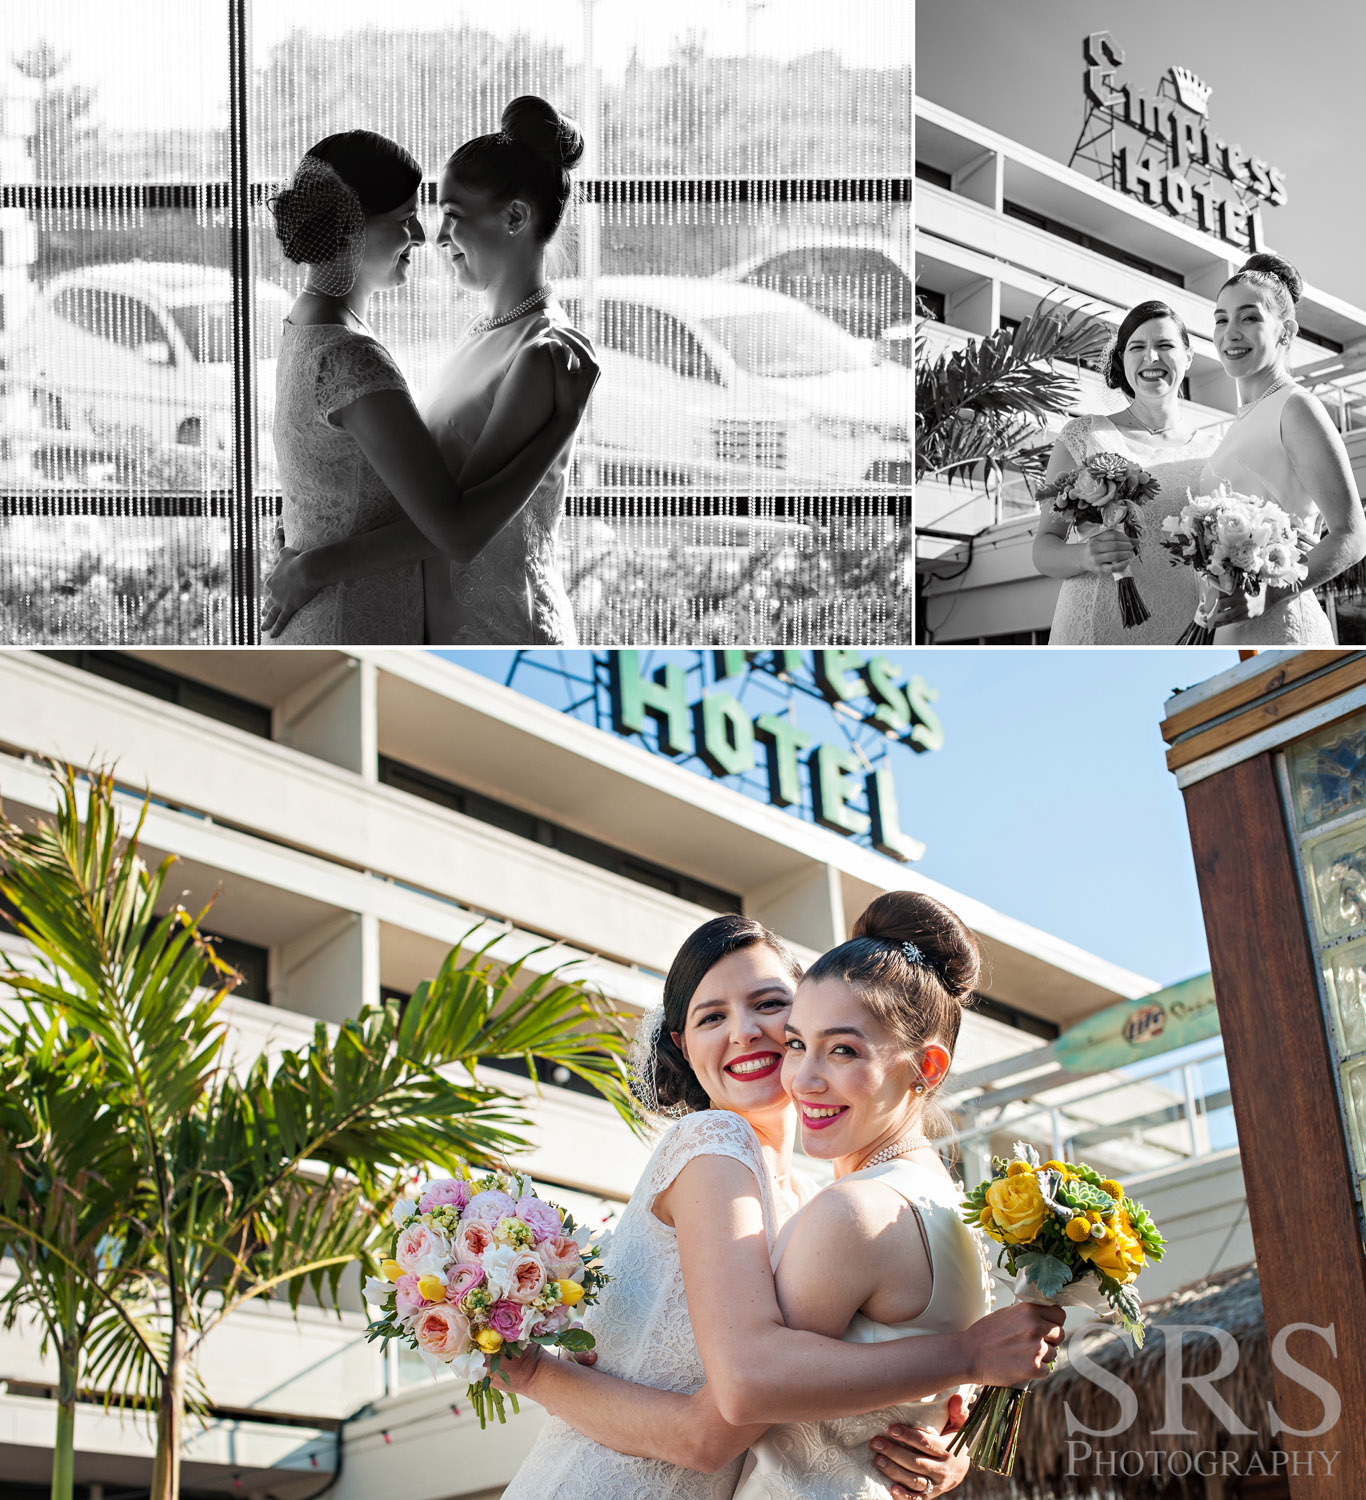 07_srs_photography_sara_stadtmiller_asbury_park_wedding_photography_nj_wedding_photographer_monmouth_county_wedding_photographer_same_sex_marriage_gay_wedding_empress_hotel